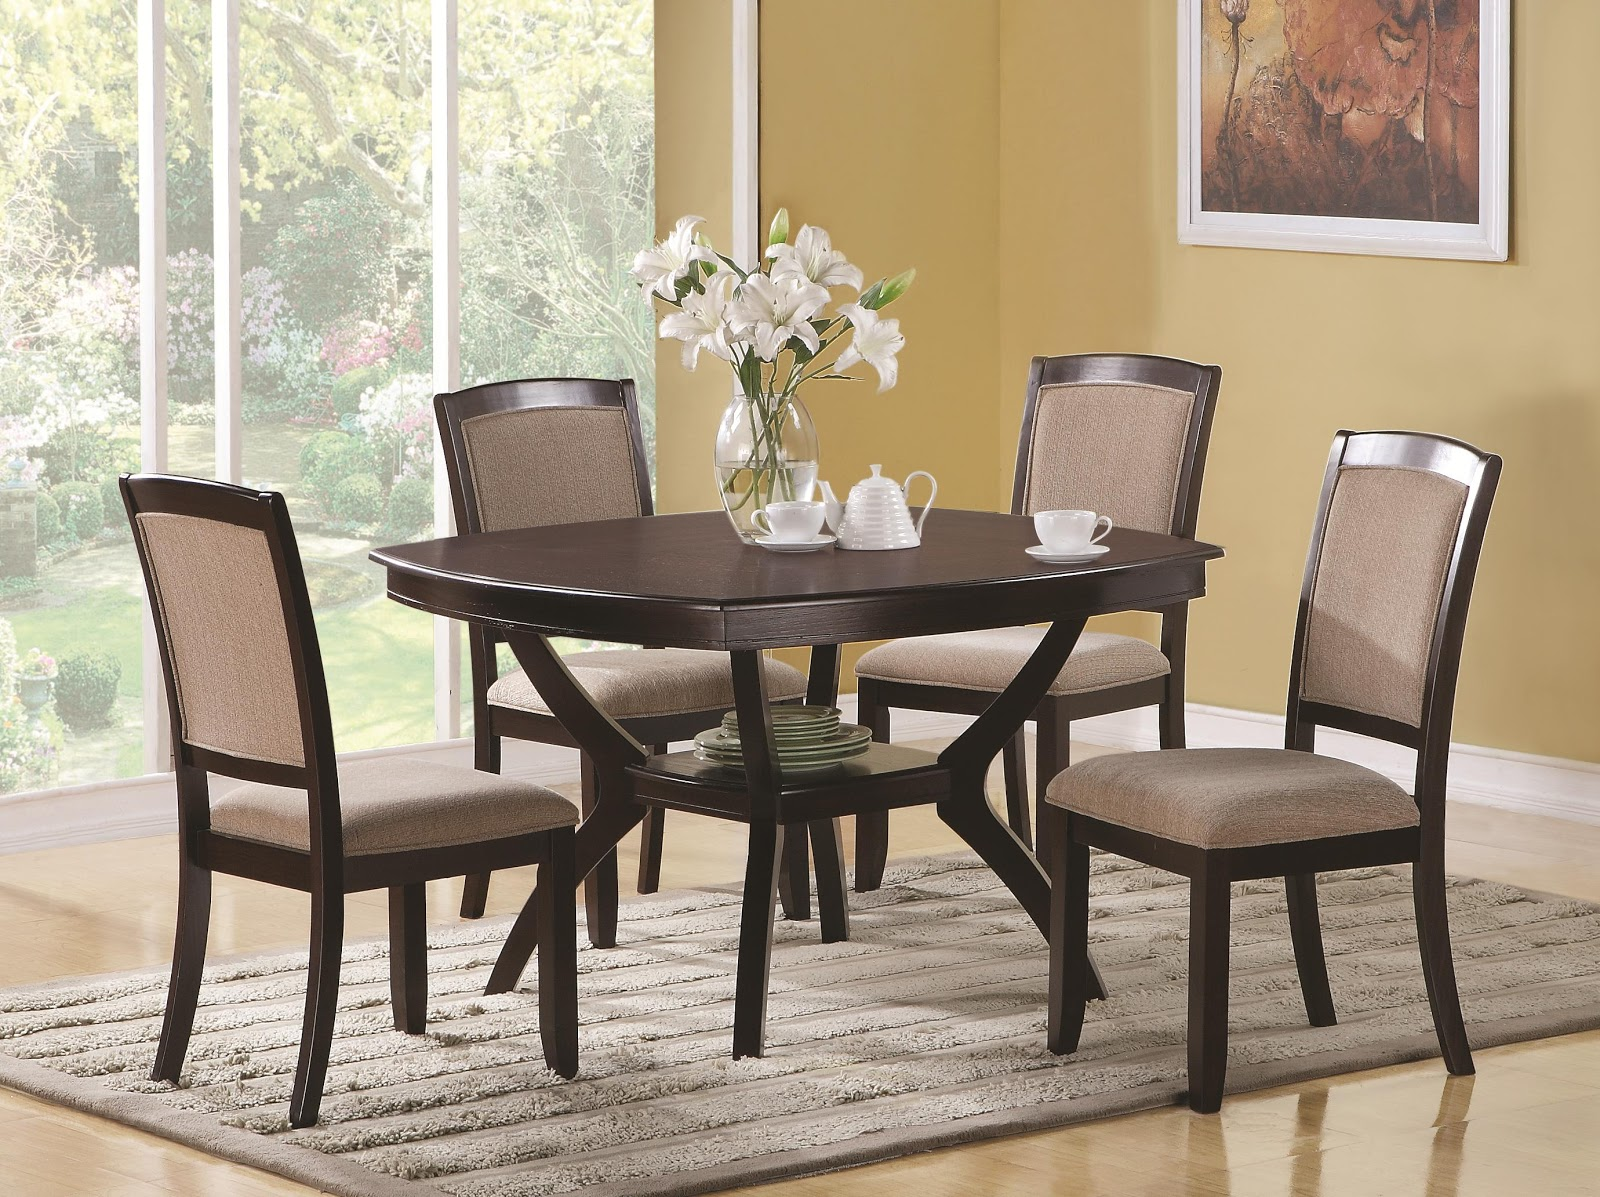 Round dining room sets dining room unique dinette for Dinette sets